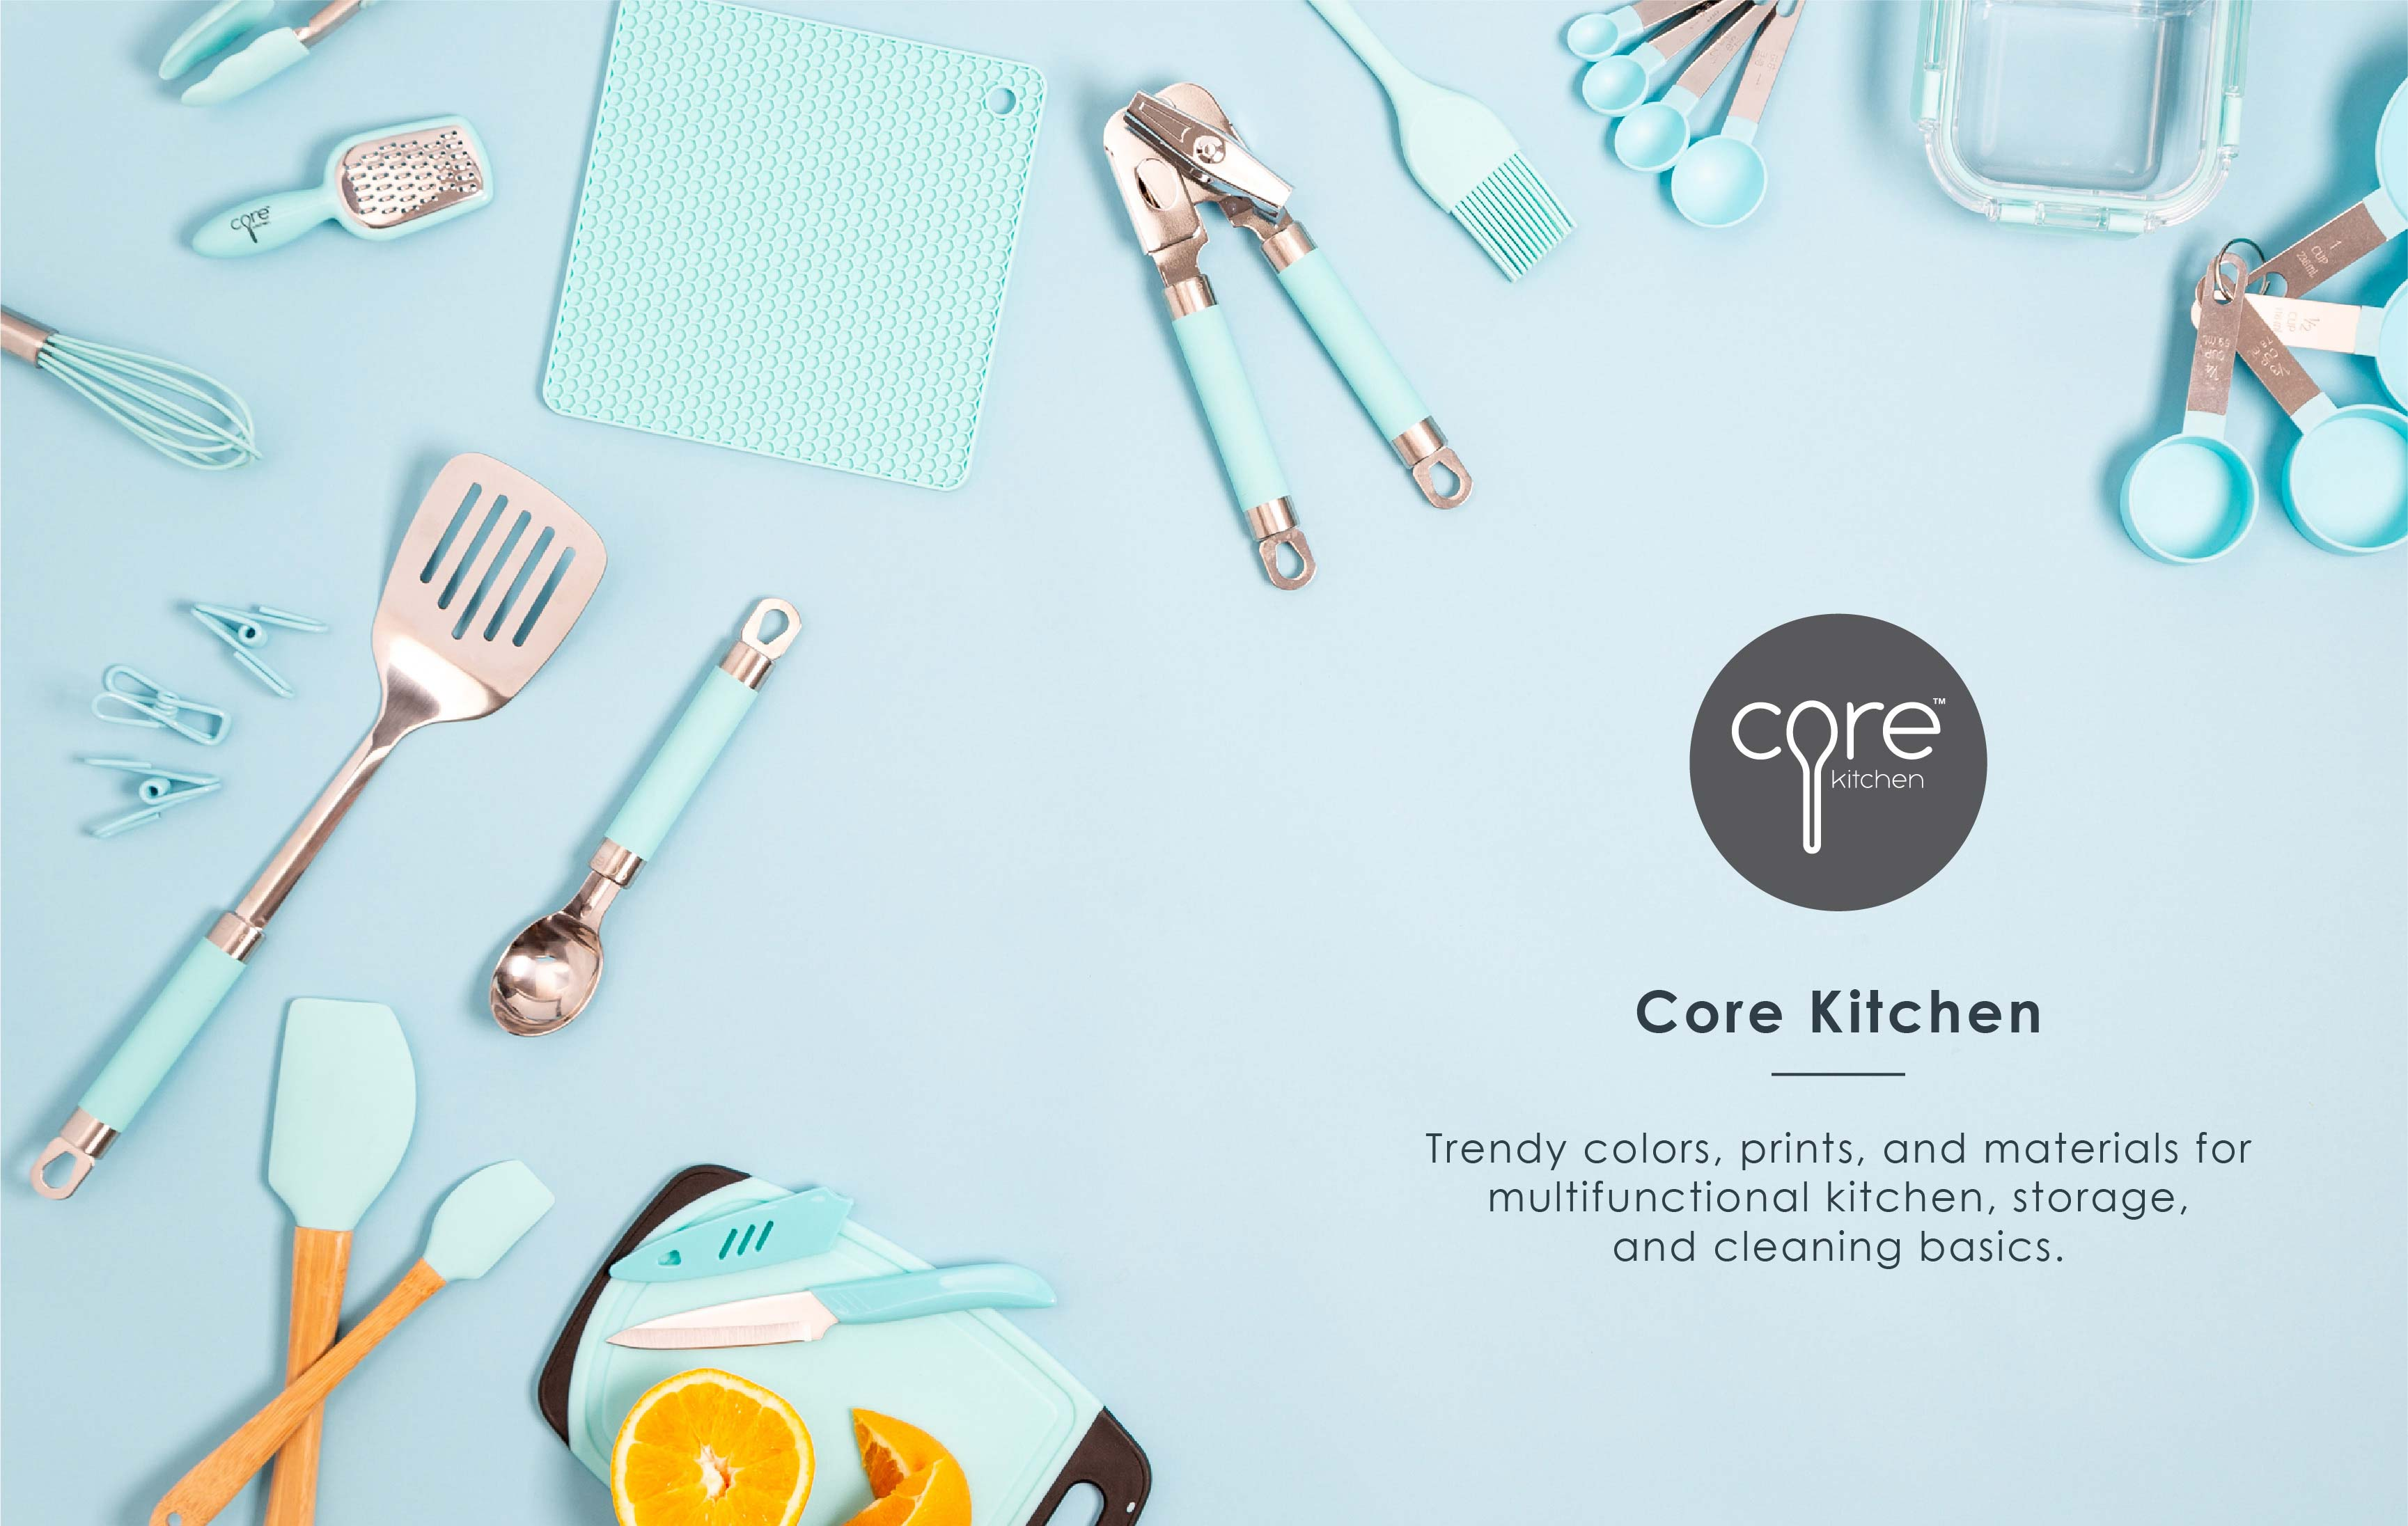 Our_Brand_Core_Kitchen